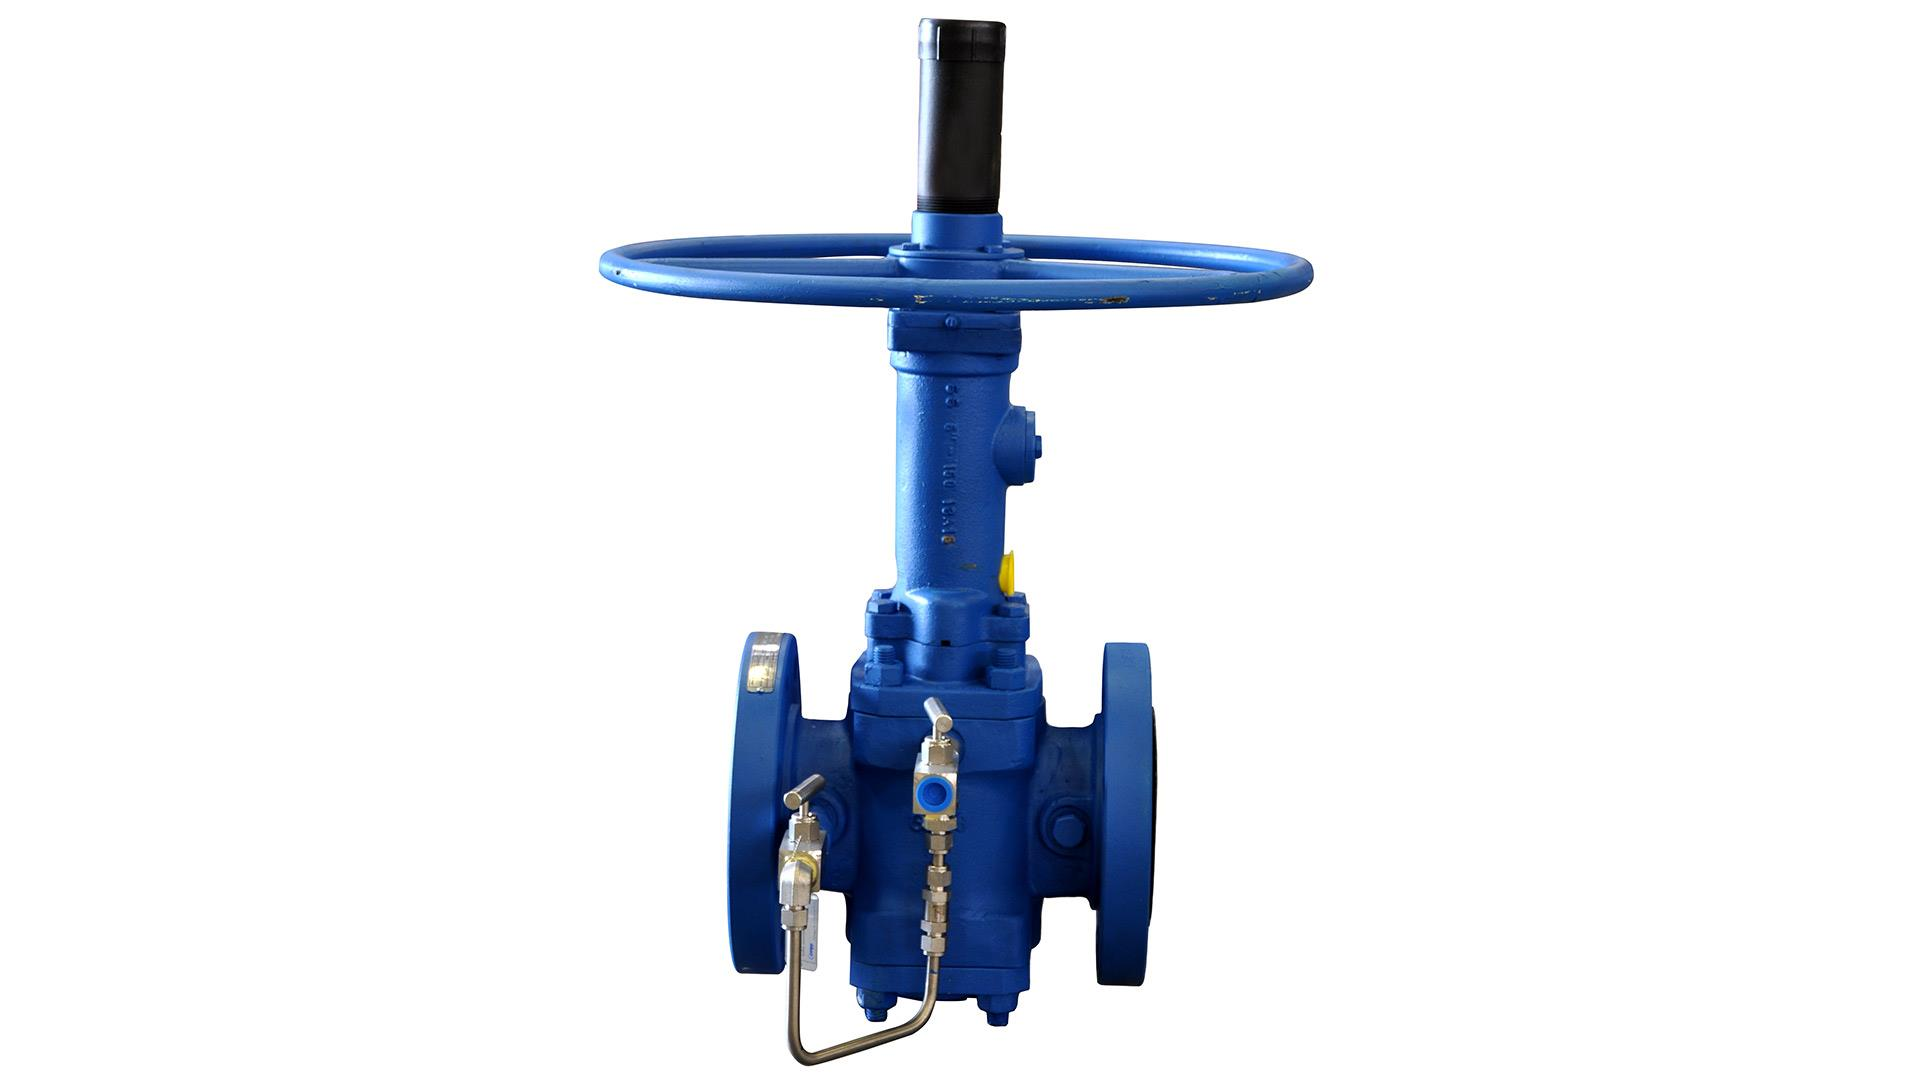 A render of an Expanding Plug Valve